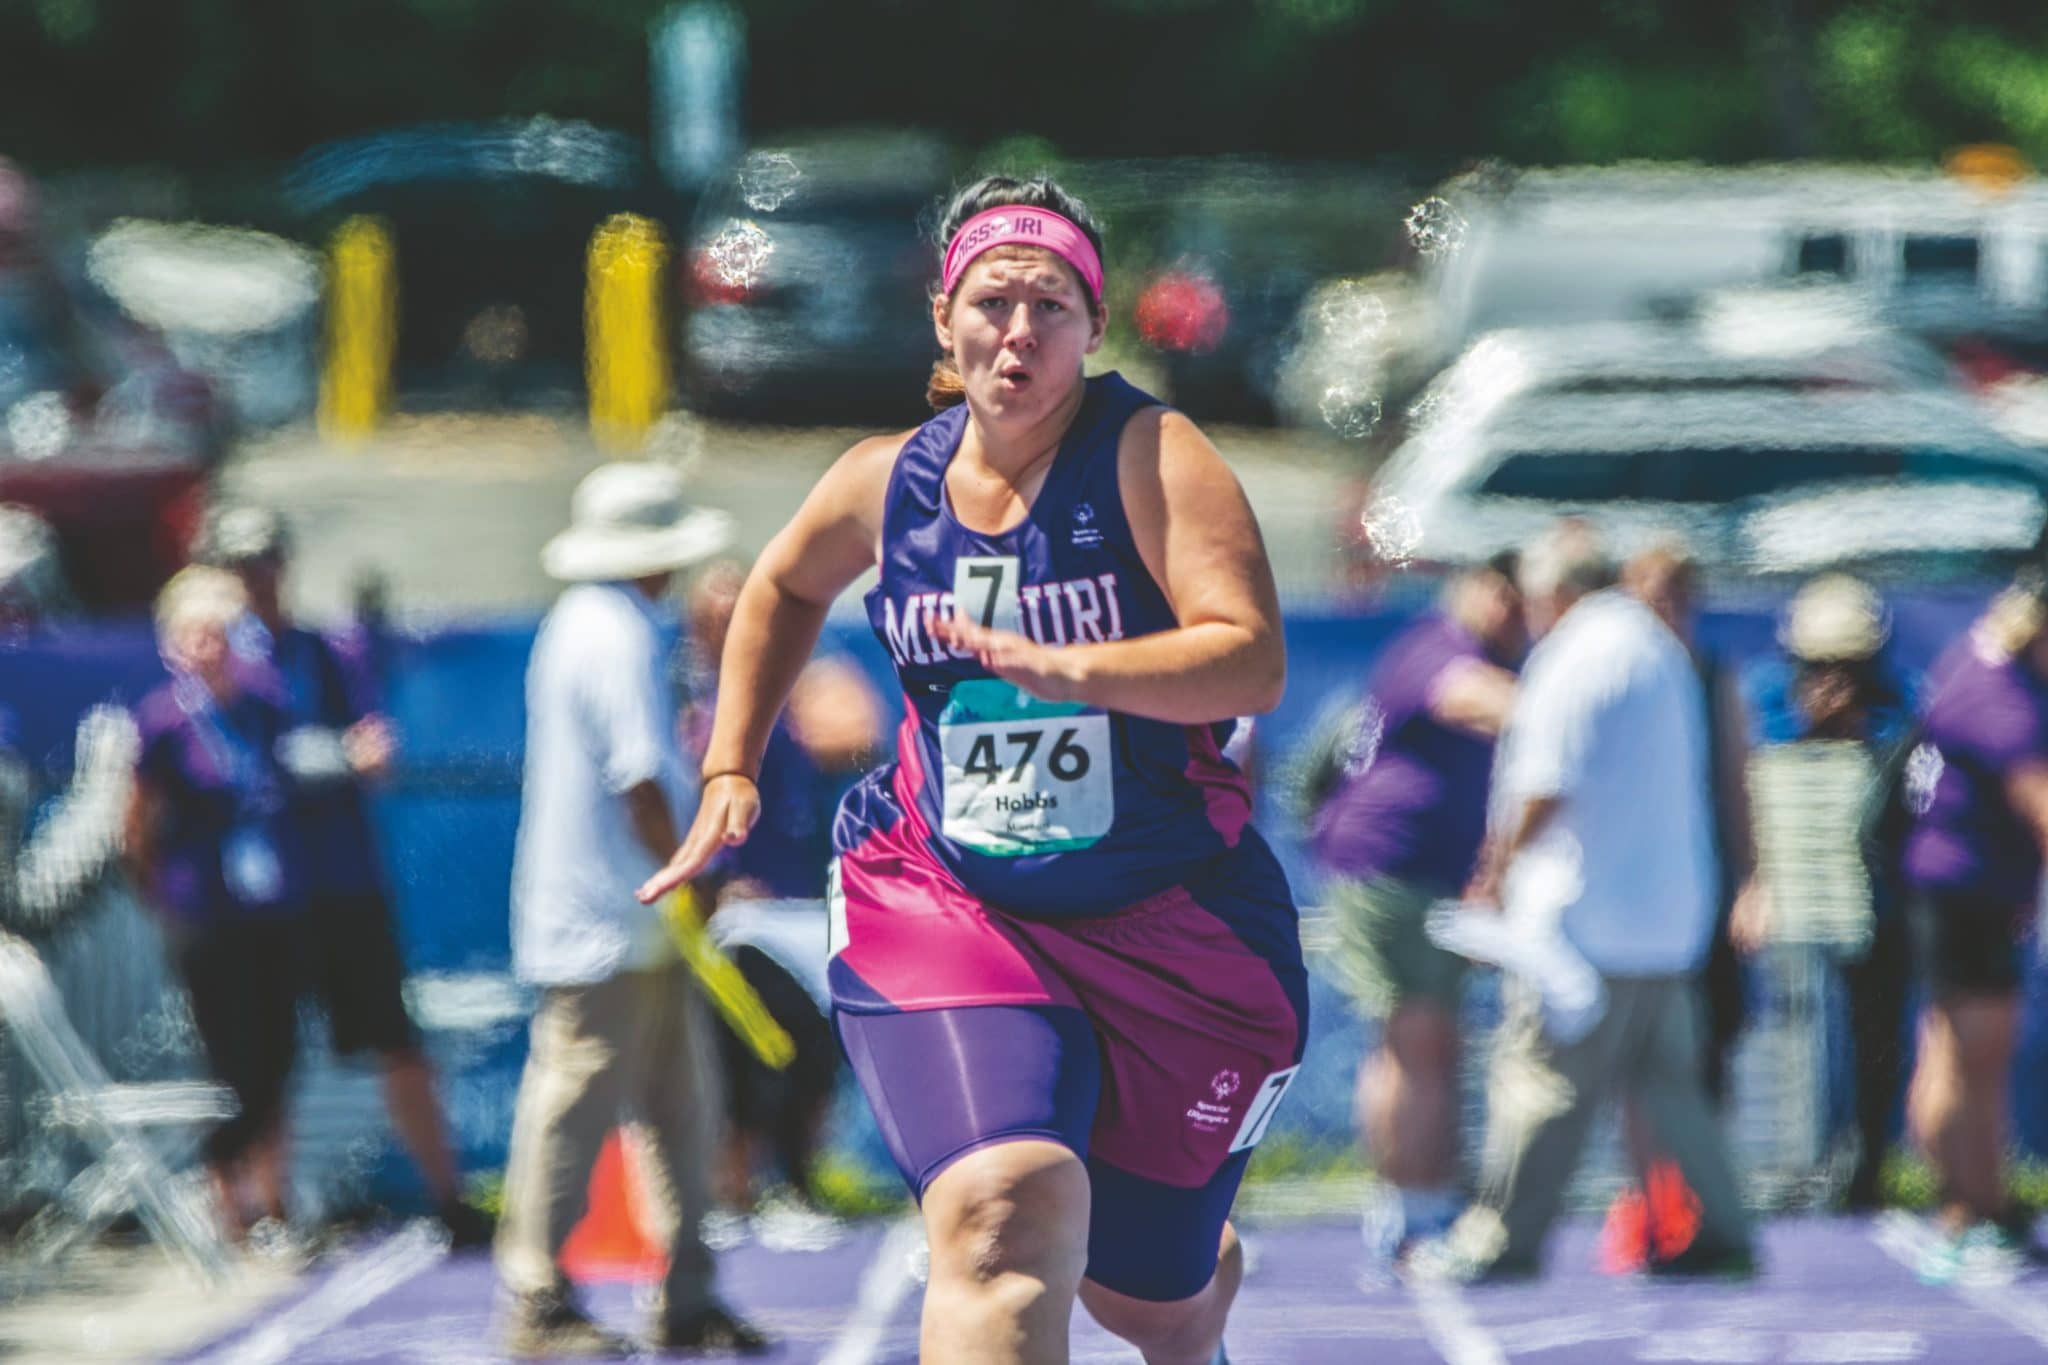 An athlete with a purple and pink Team Missouri uniform runs down the track looking straight ahead into the camera